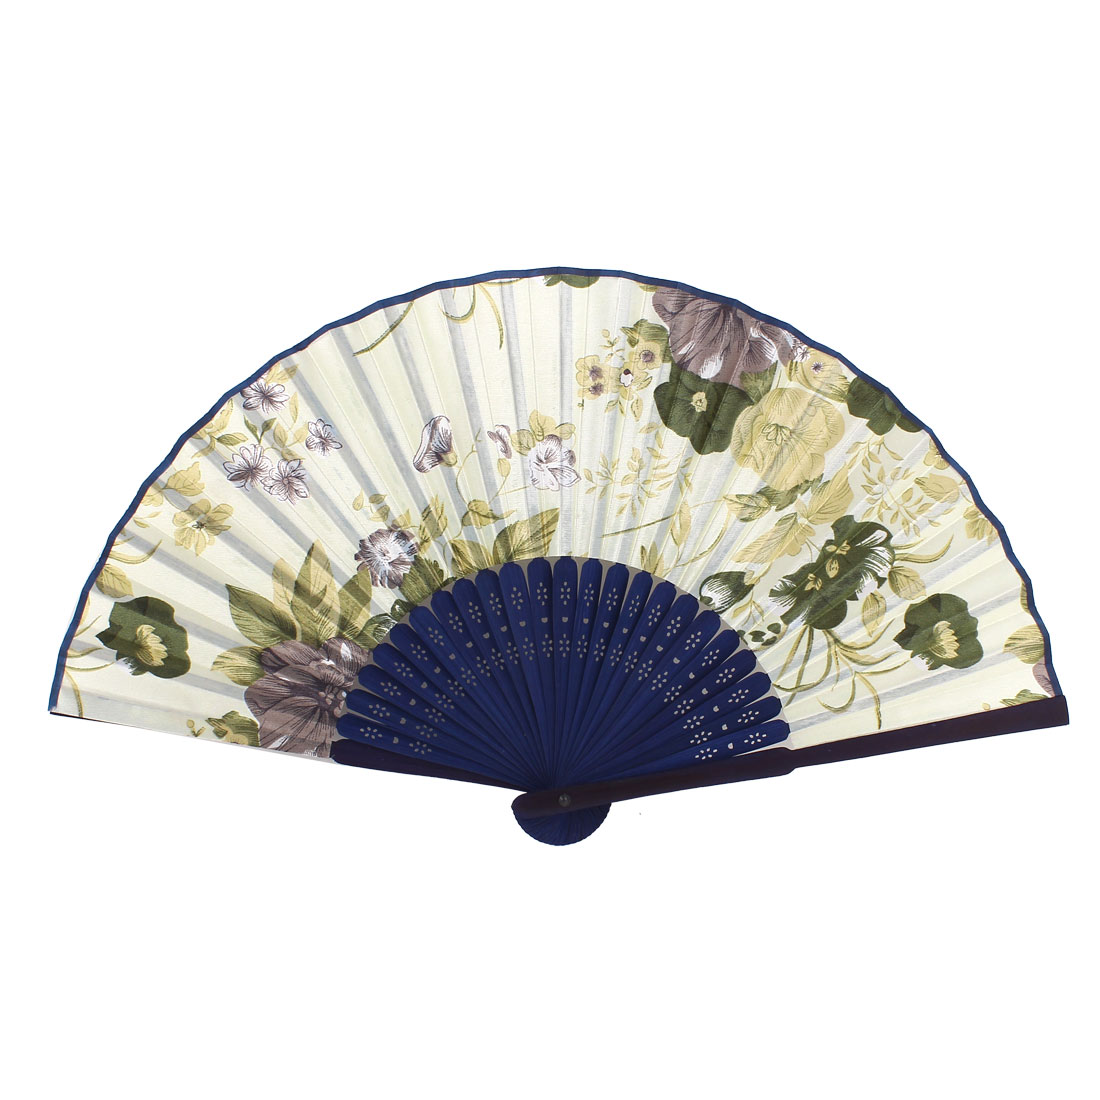 Houseware Bamboo Hollow Out Ribs Flower Print Summer Hand Fan White